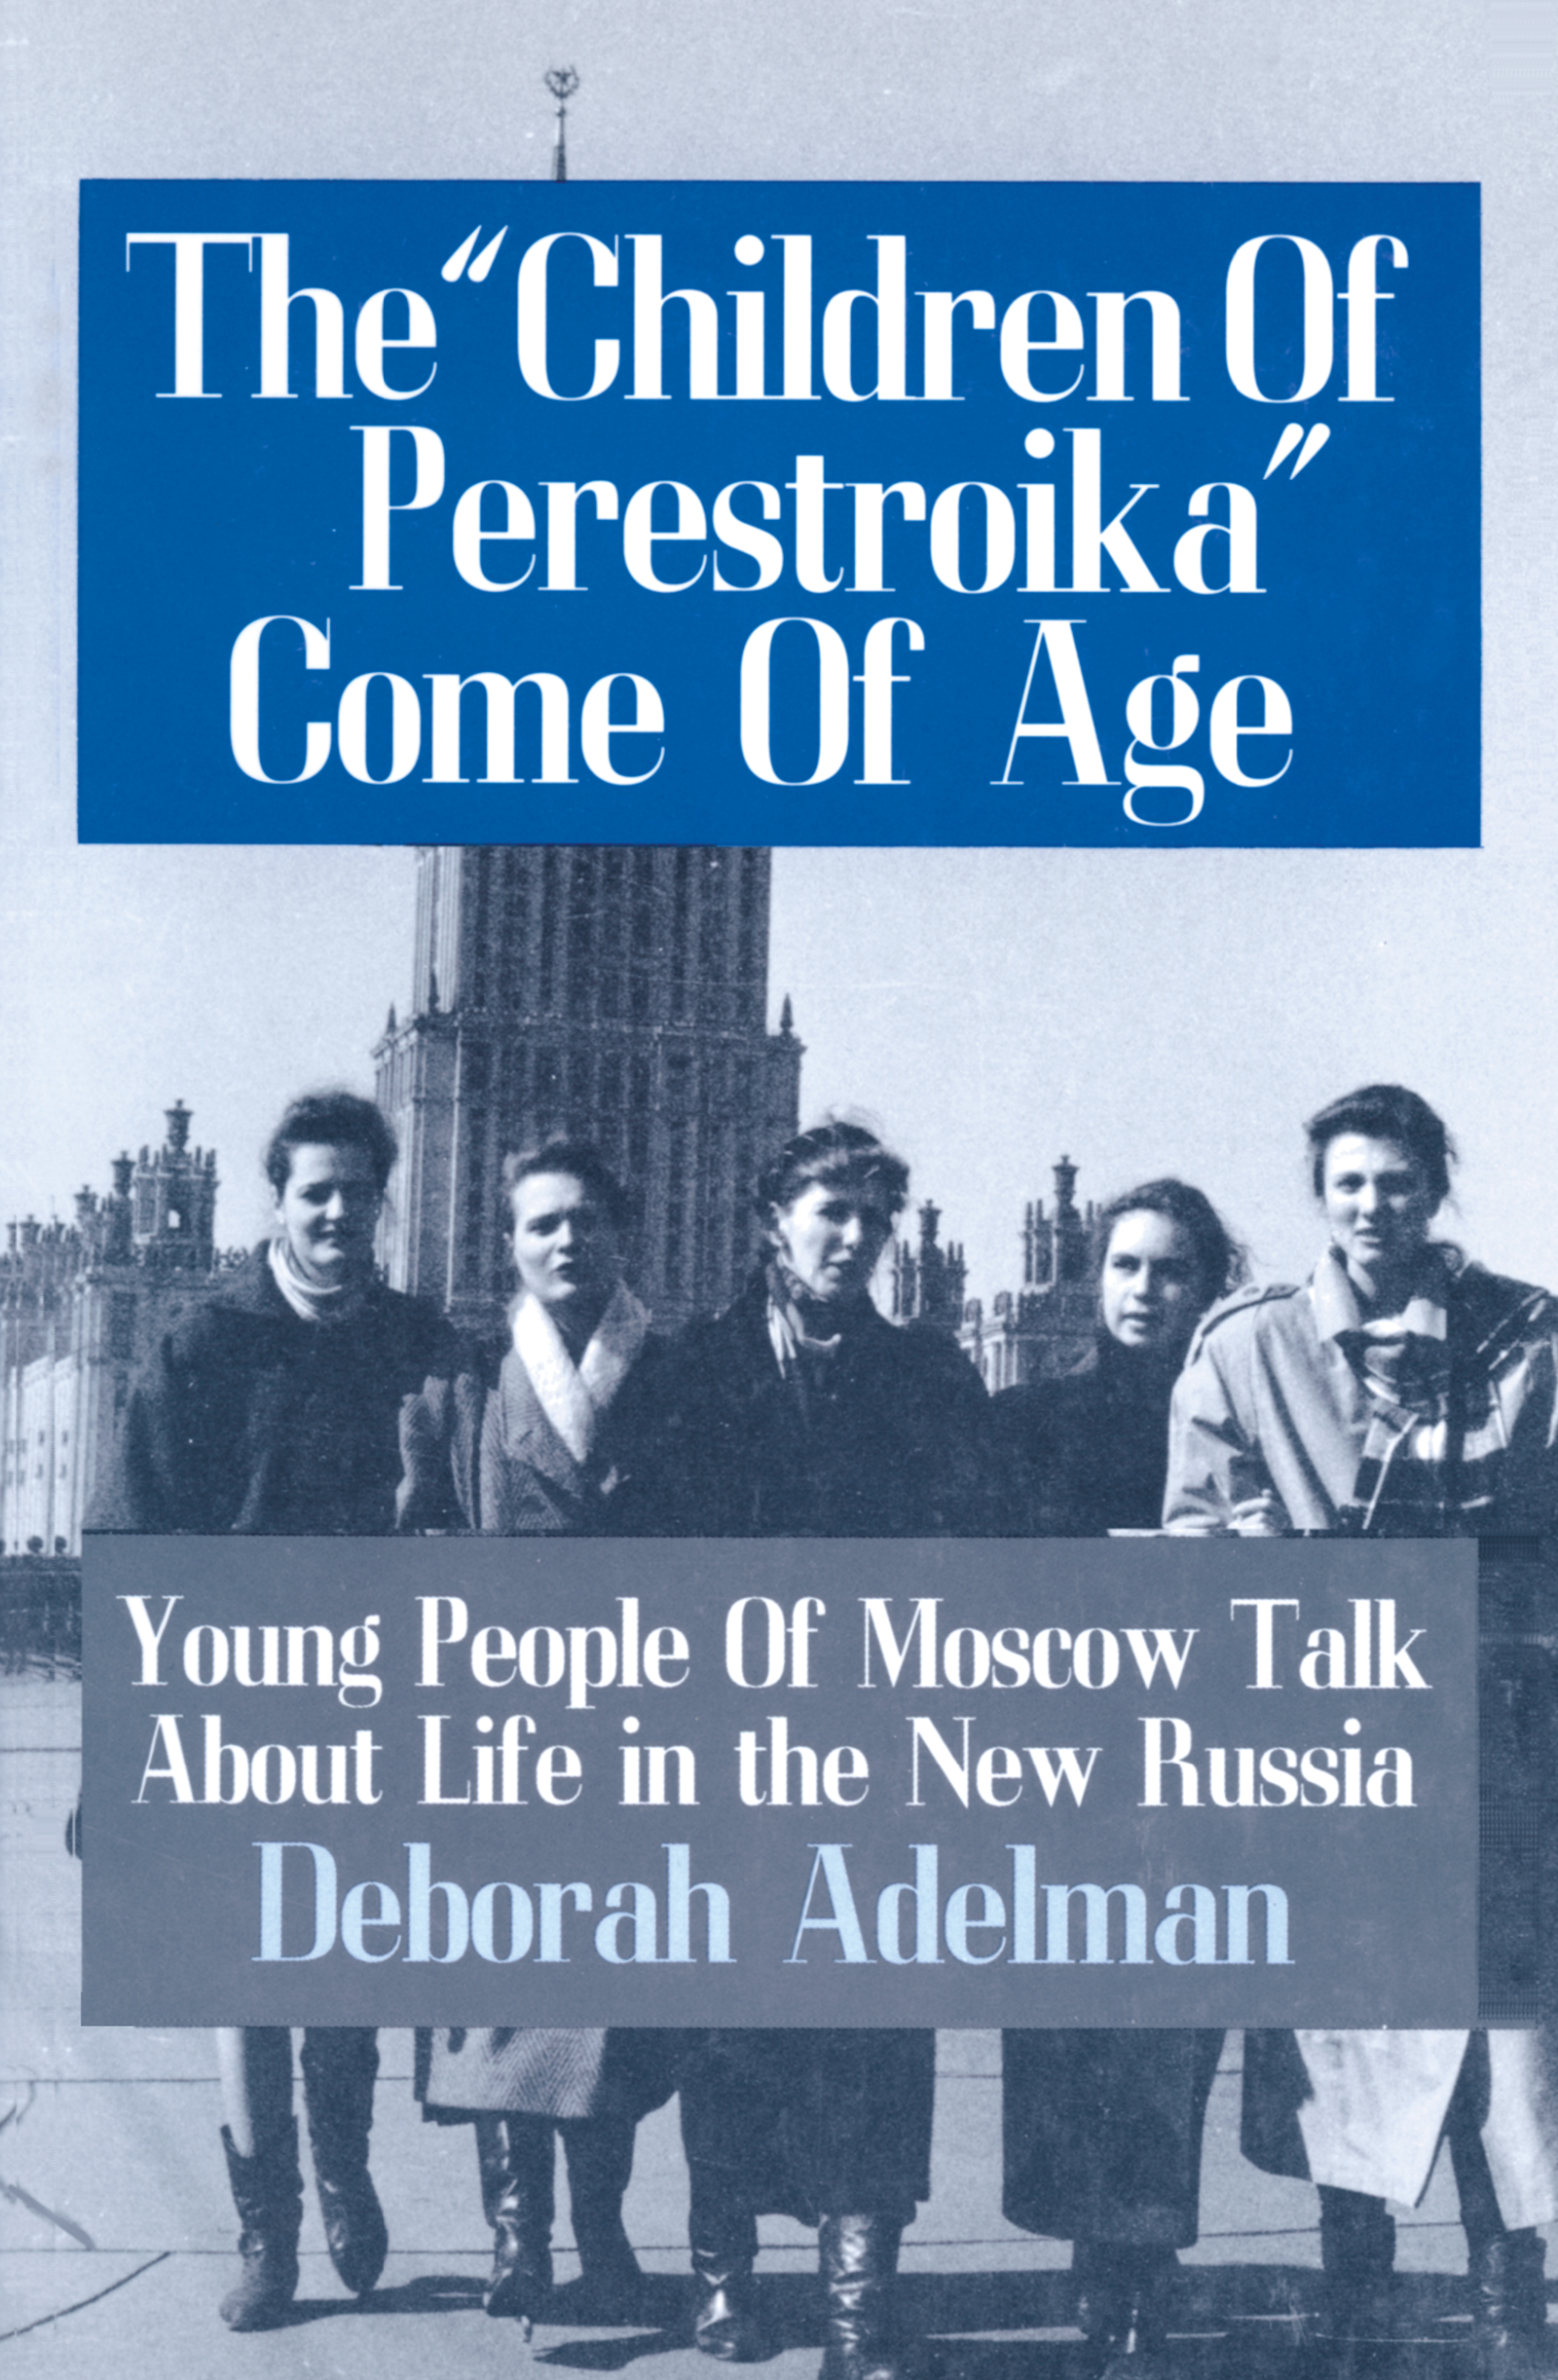 The Children of Perestroika Come of Age: Young People of Moscow Talk About Life in the New Russia, 1st Edition (Paperback) book cover